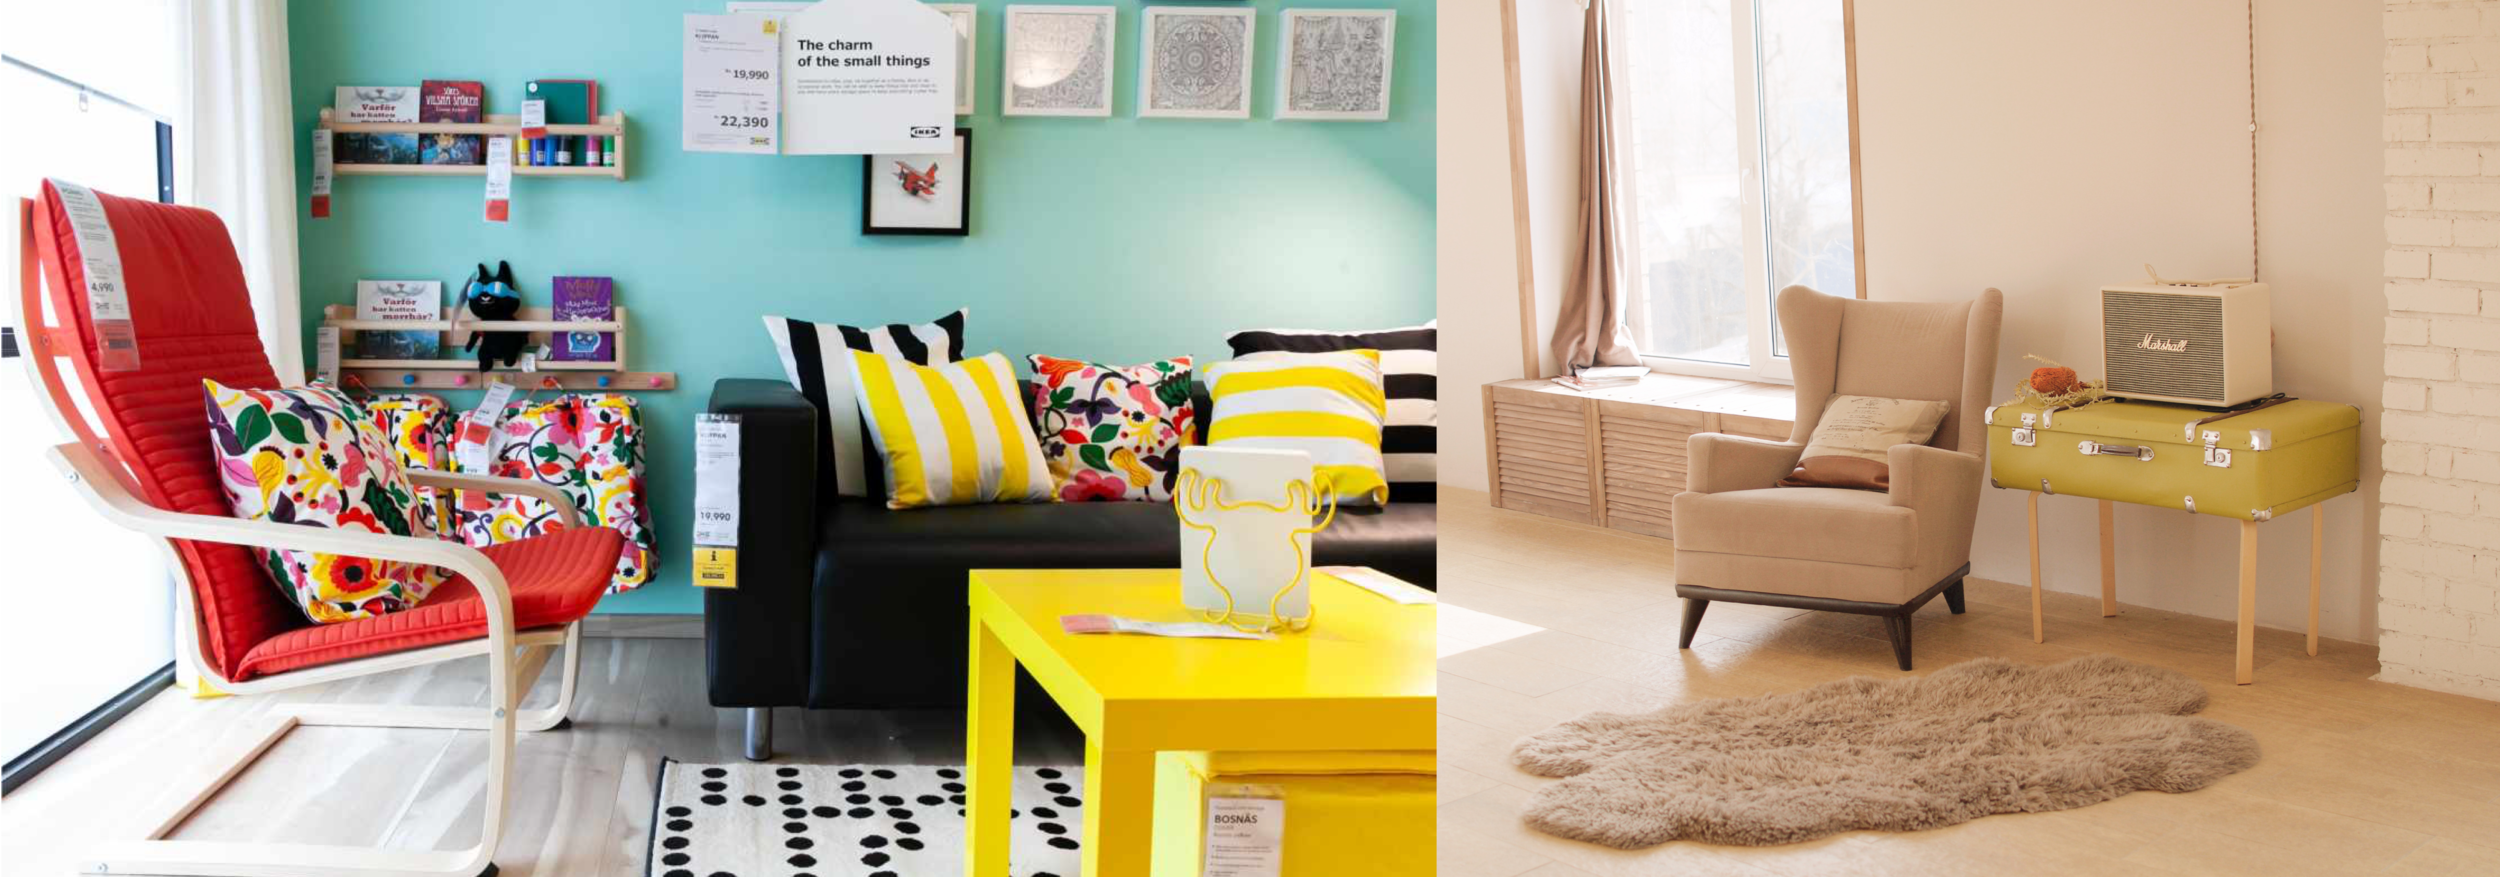 IKEA staged home for someone's dream home